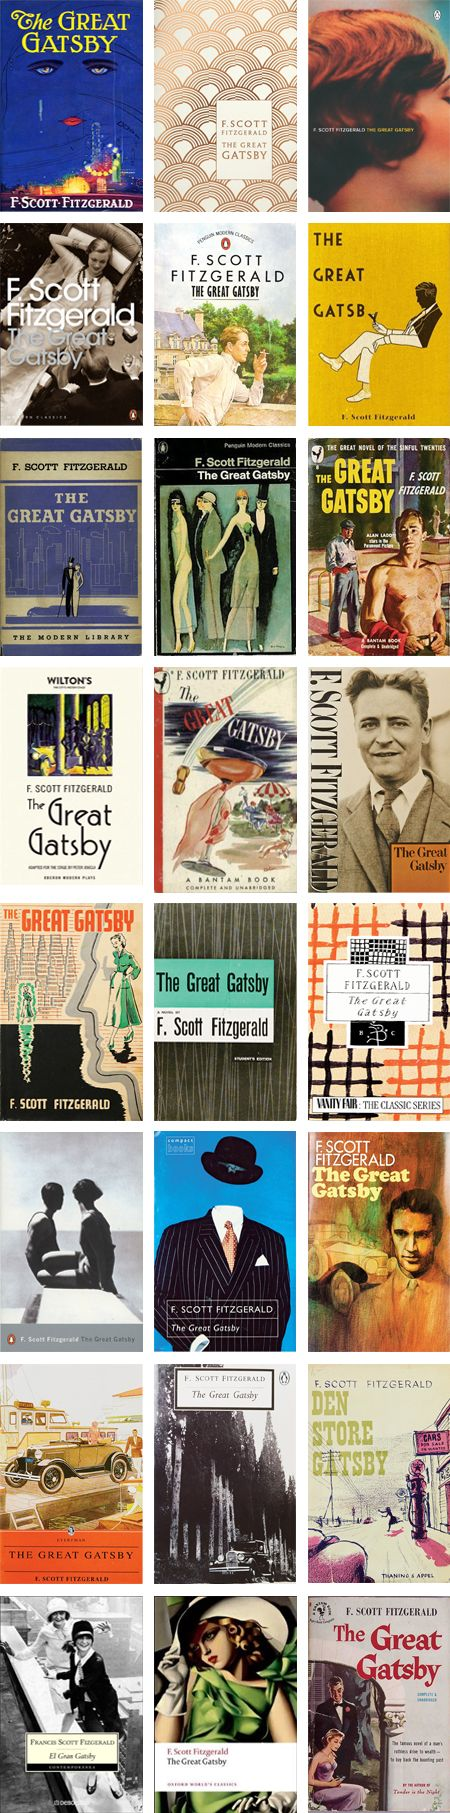 Exploring the many different themes in fitzgeralds novel the great gatsby